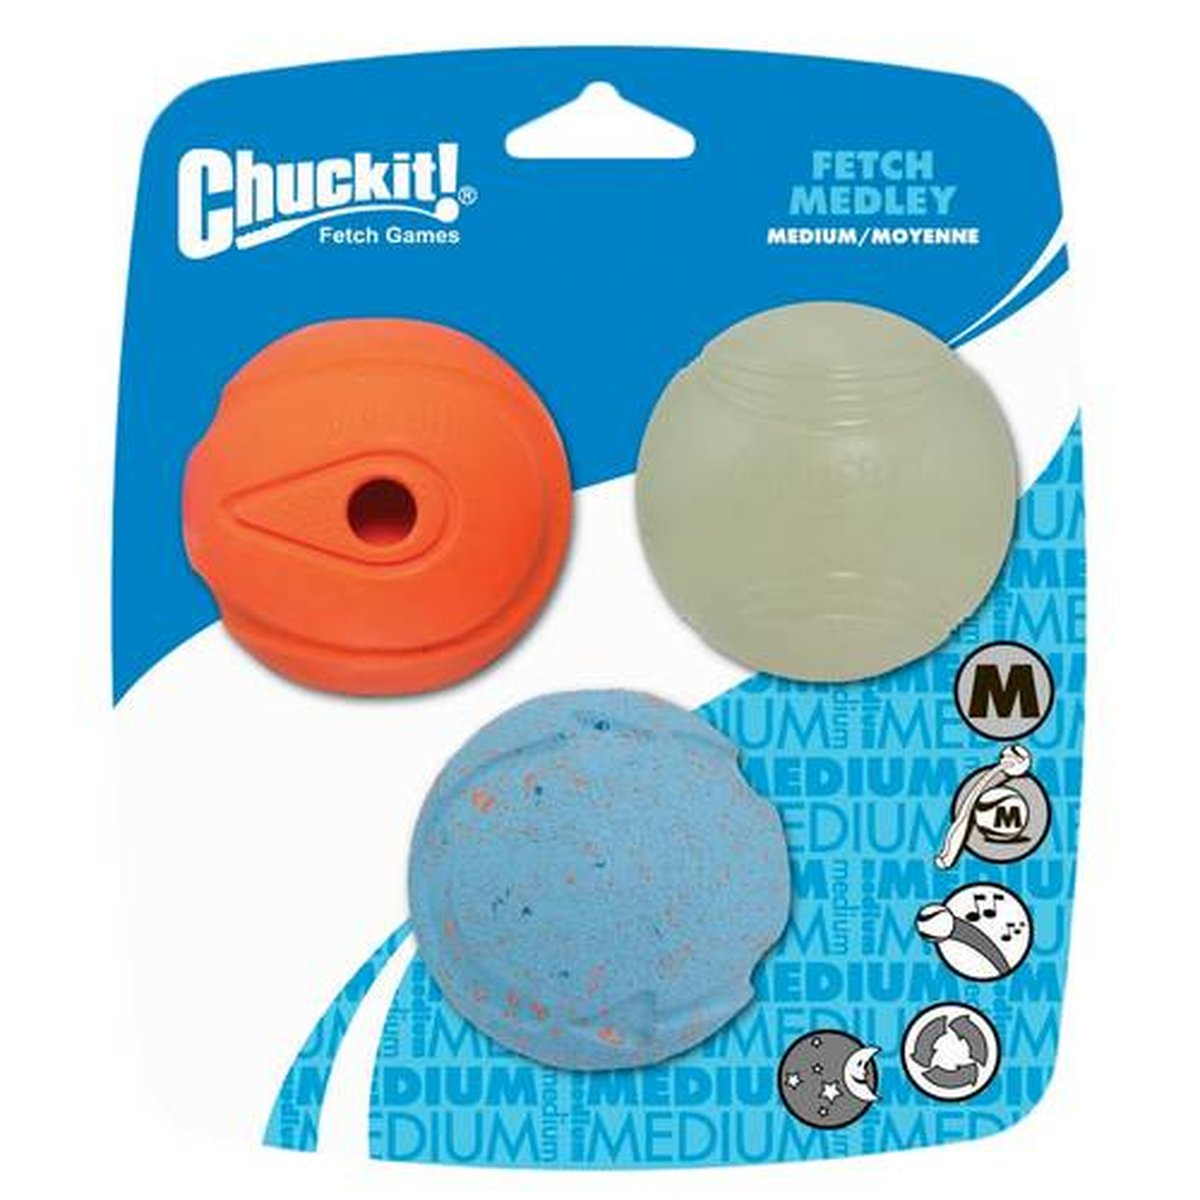 Afbeelding van Chuckit Fetch Medley Medium 3 pack 1 set